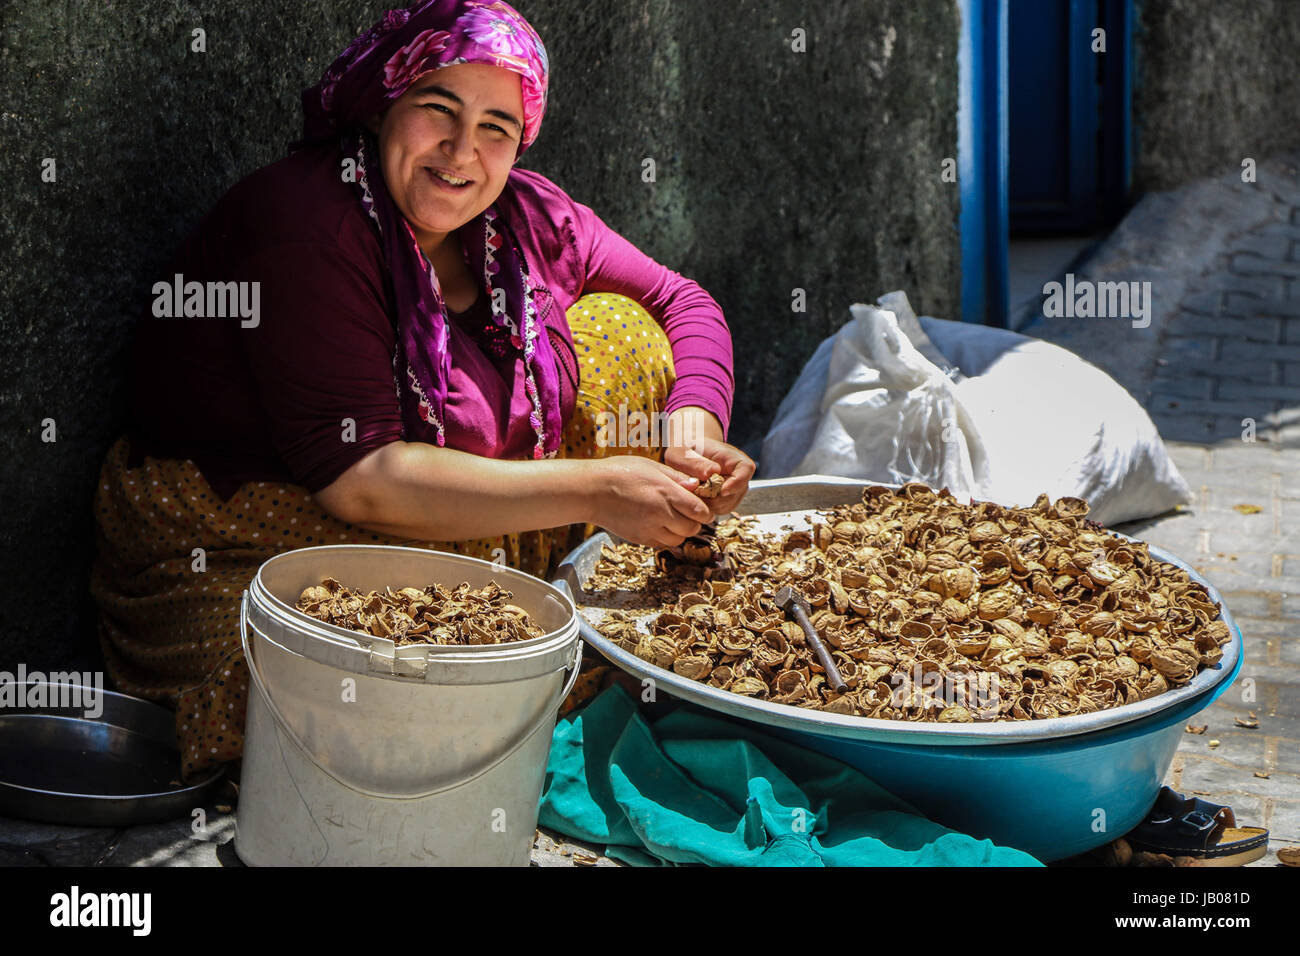 June 3, 2017 - A woman cracks walnuts to remove the shell in